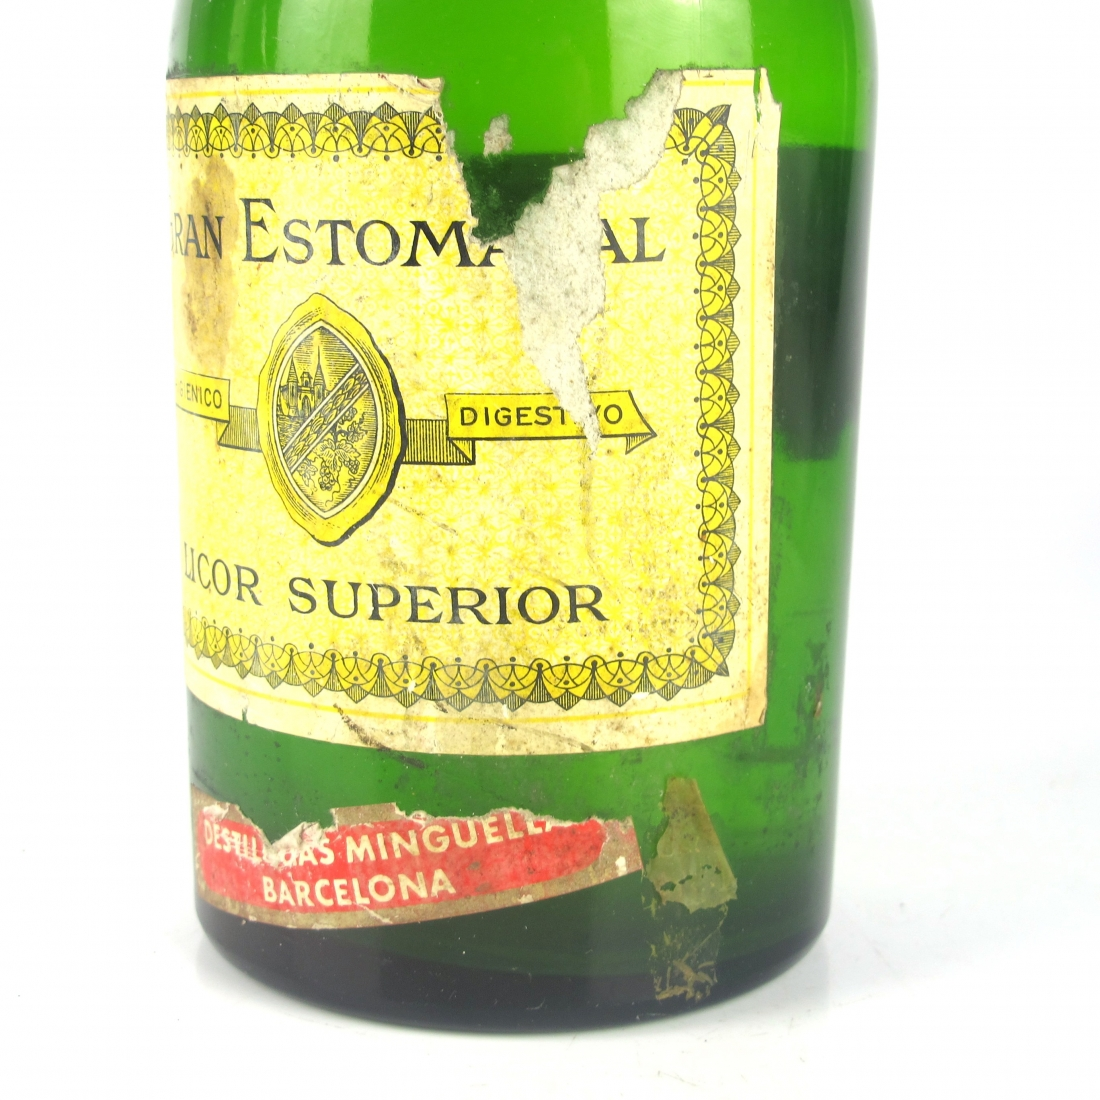 Gran Estomacal Licor Superior circa 1950s